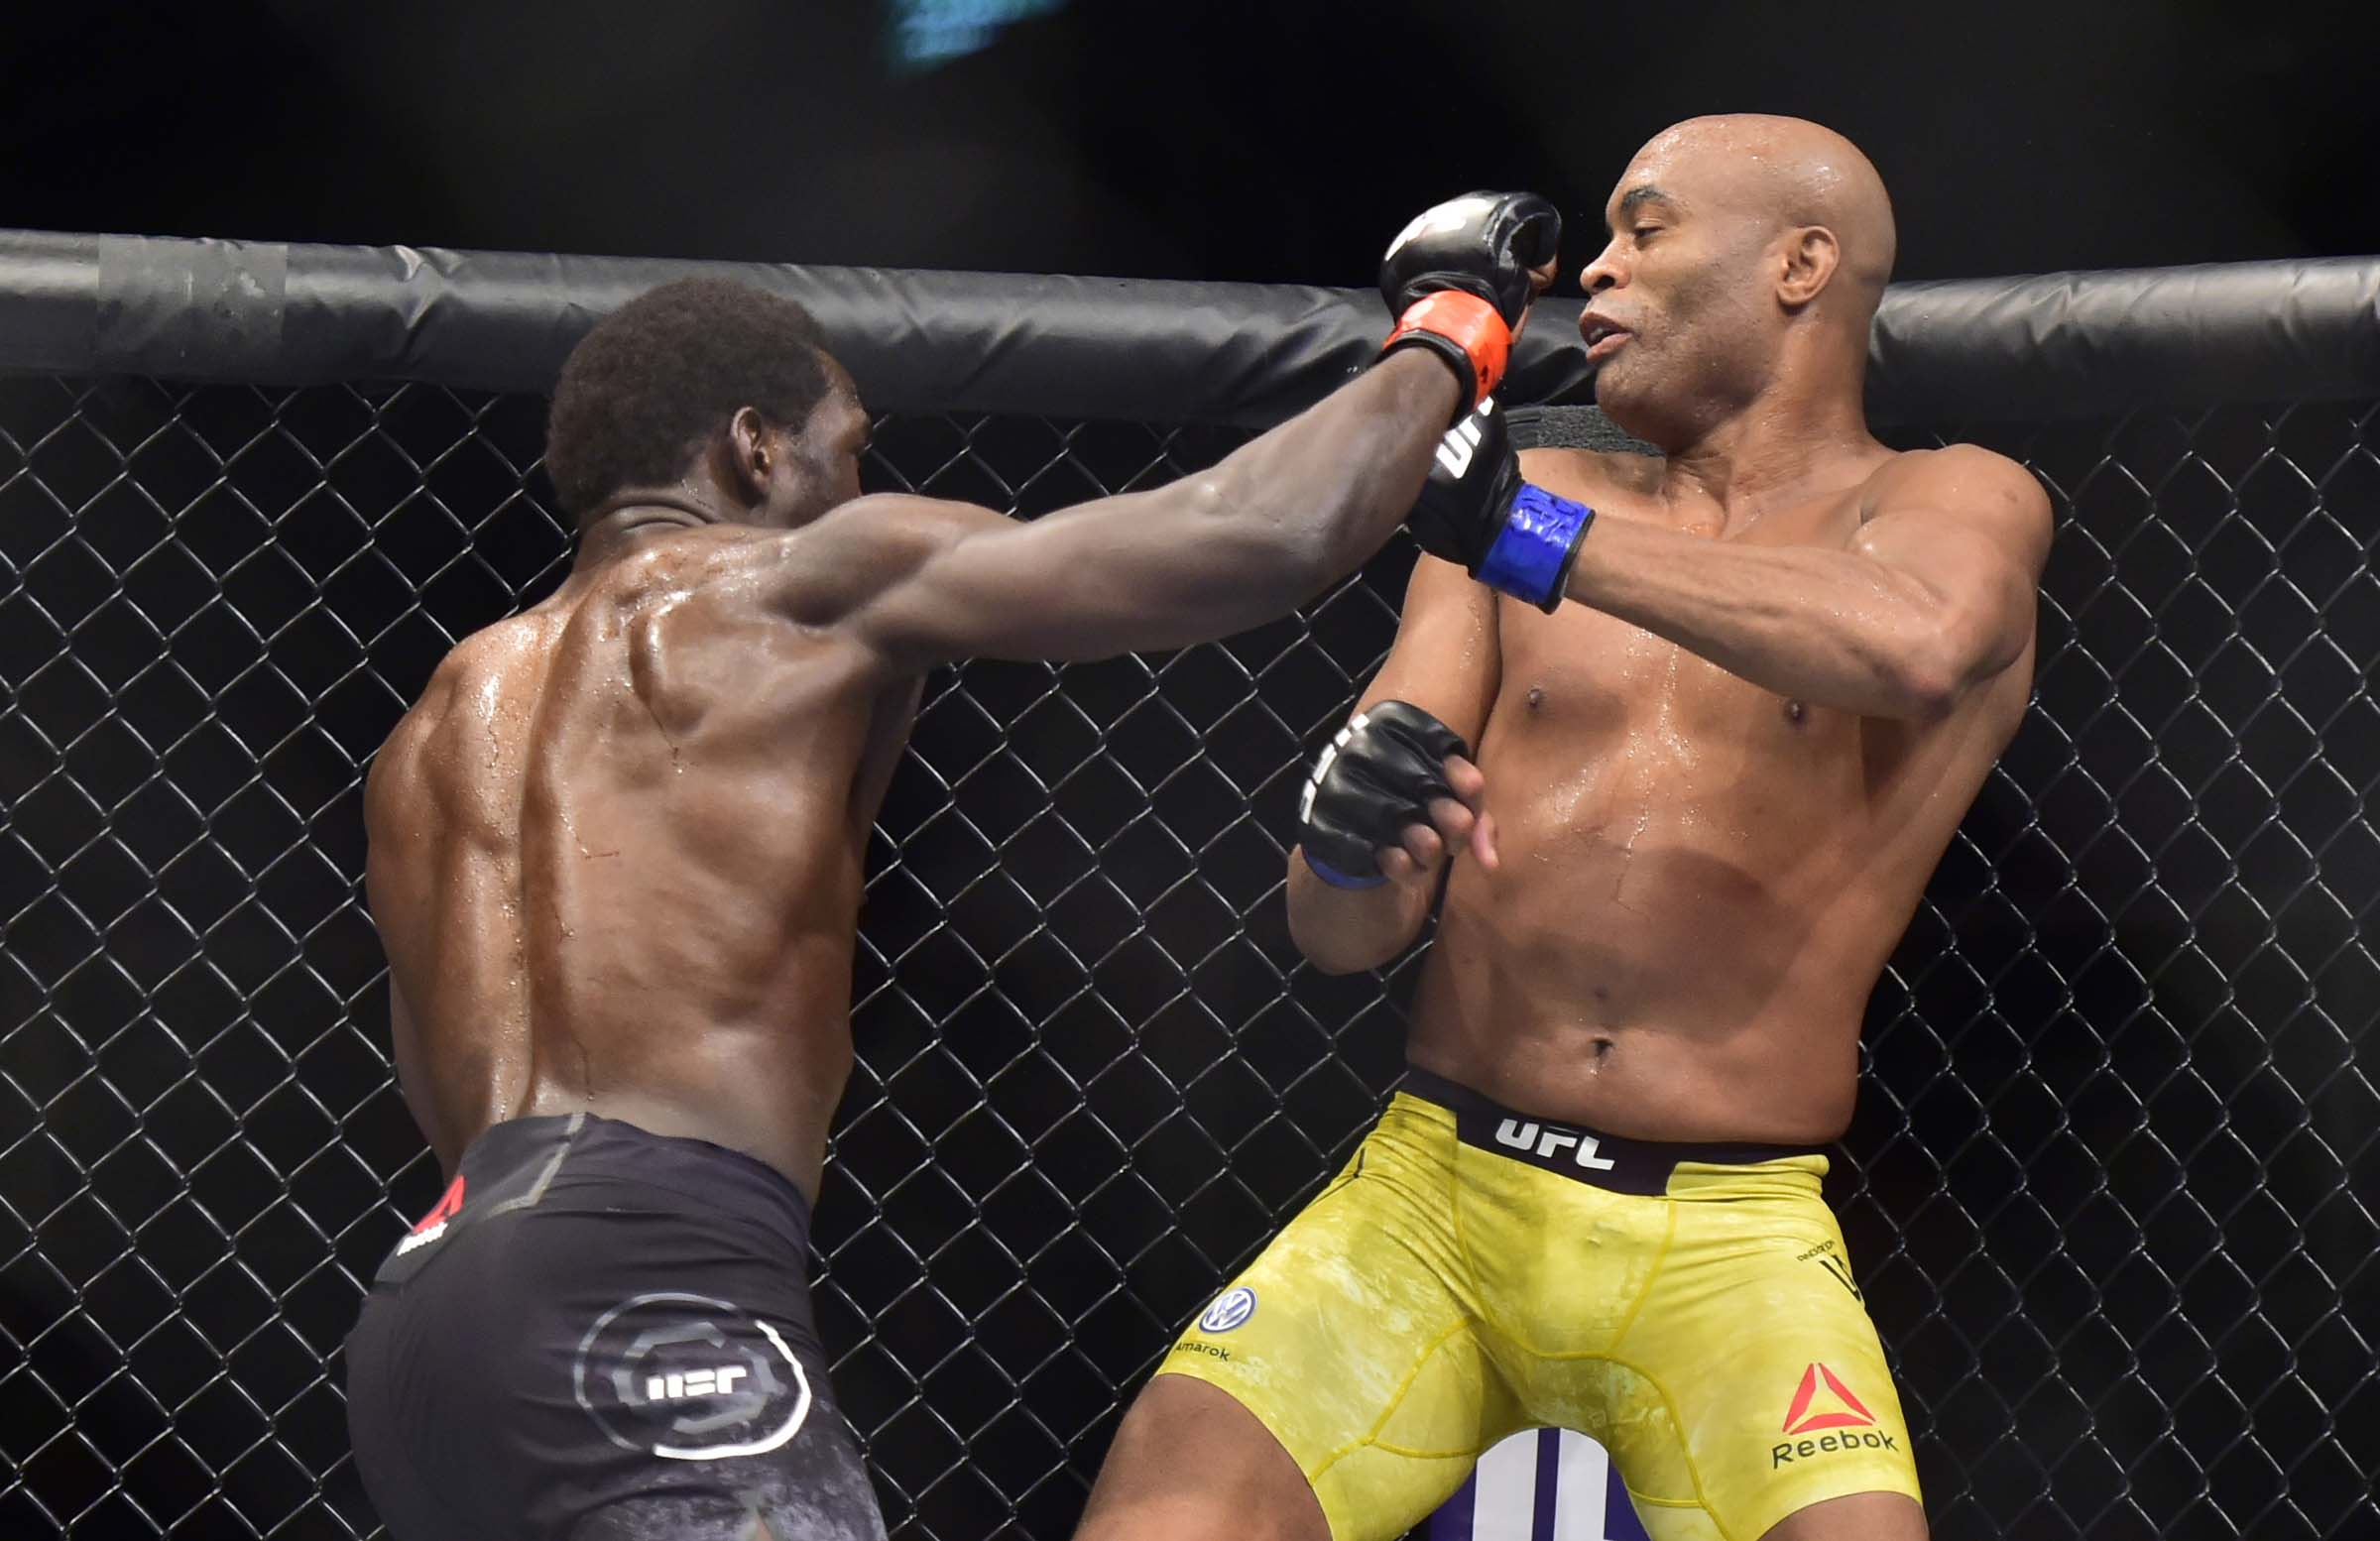 Jared Cannonier (red gloves) fights Anderson Silva (blue gloves) during UFC 237 at Jeunesse Arena